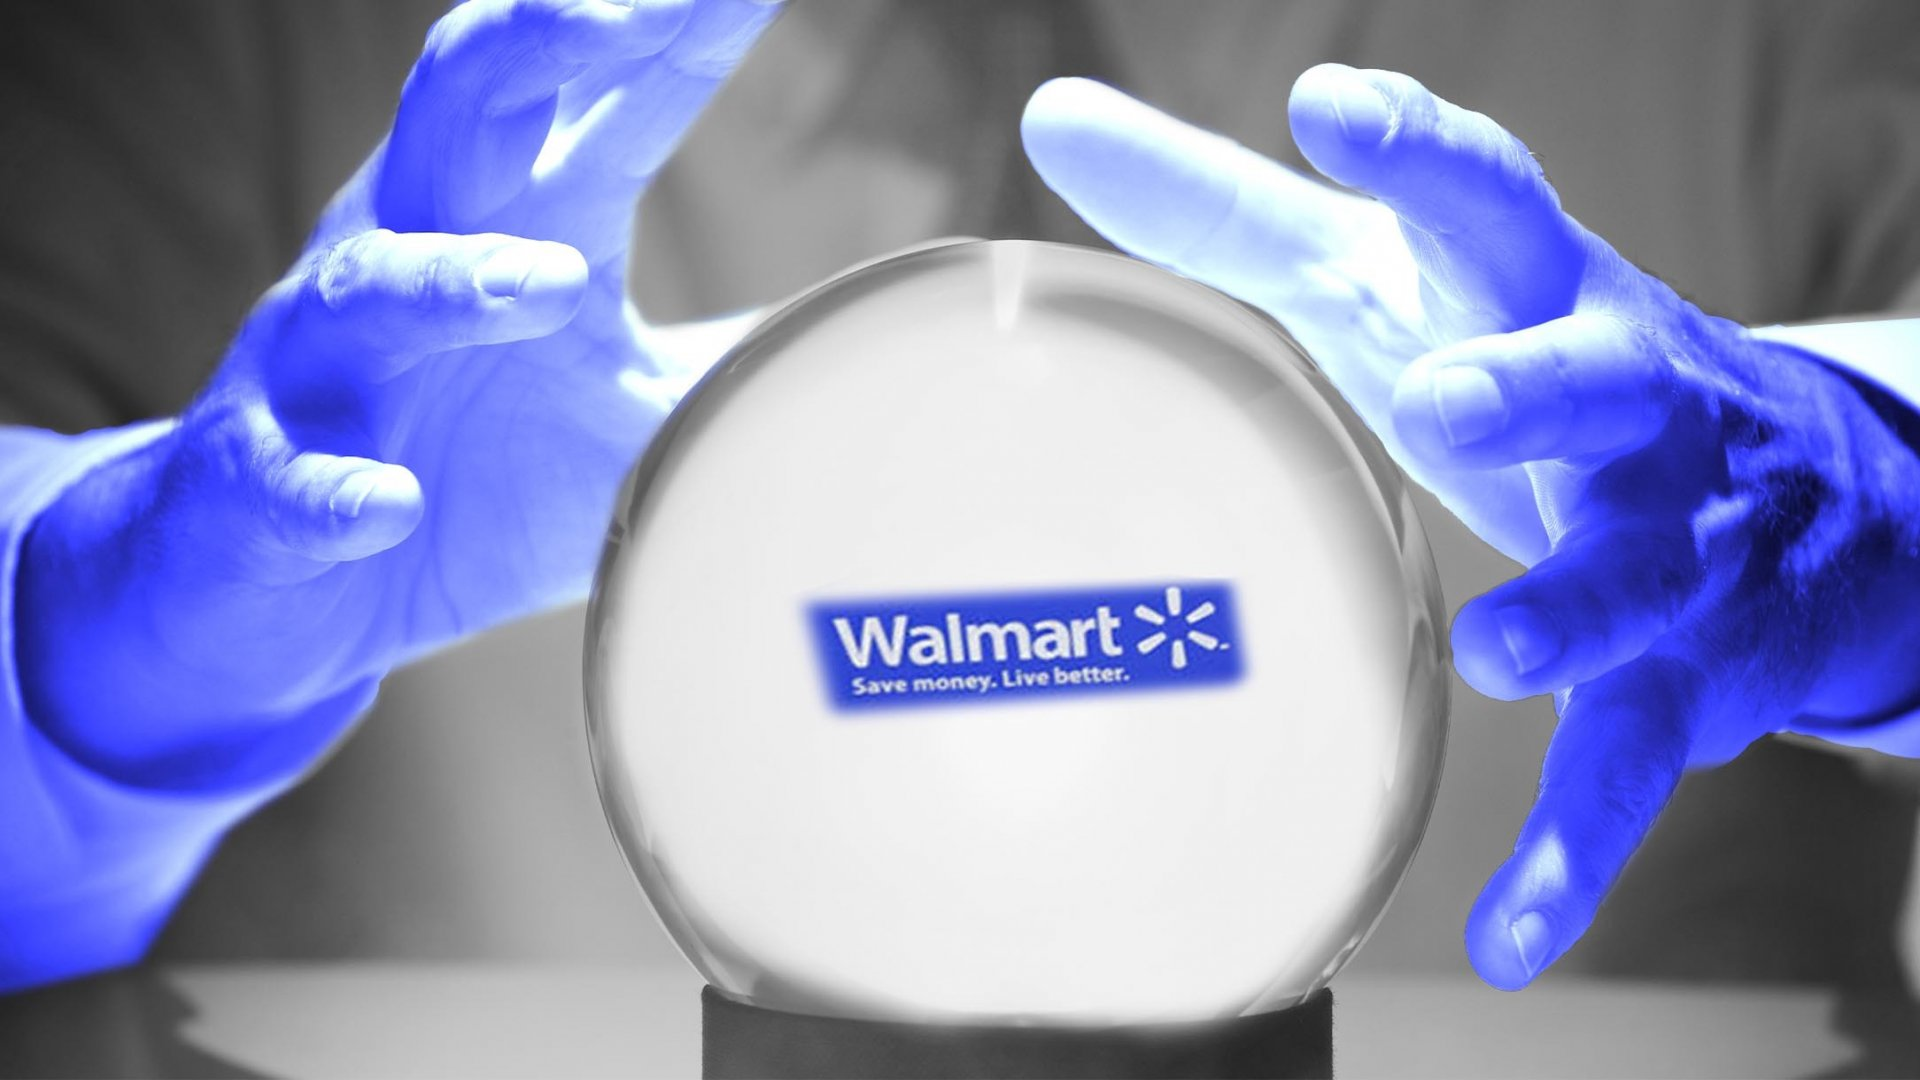 Walmart Just Started a Bold Experiment. Here's How the Future Could Look